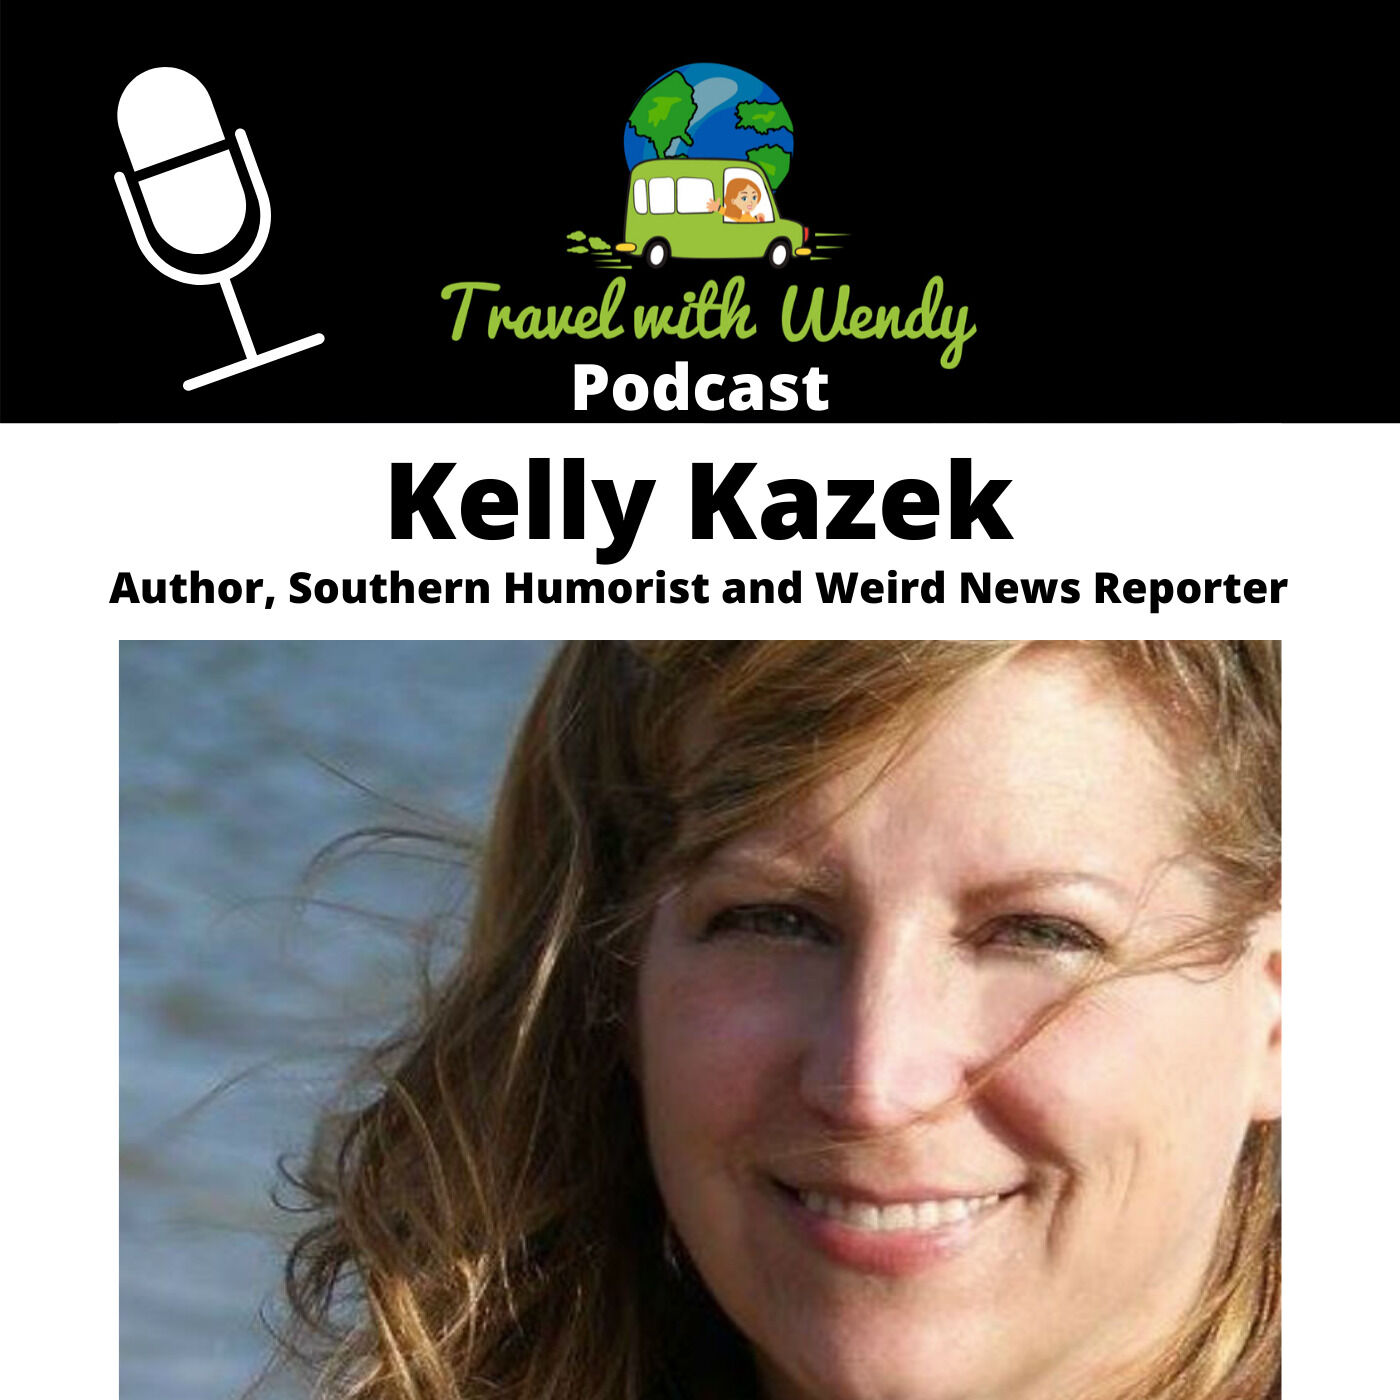 #3 - Author and Southern Humorist - Kelly Kazek